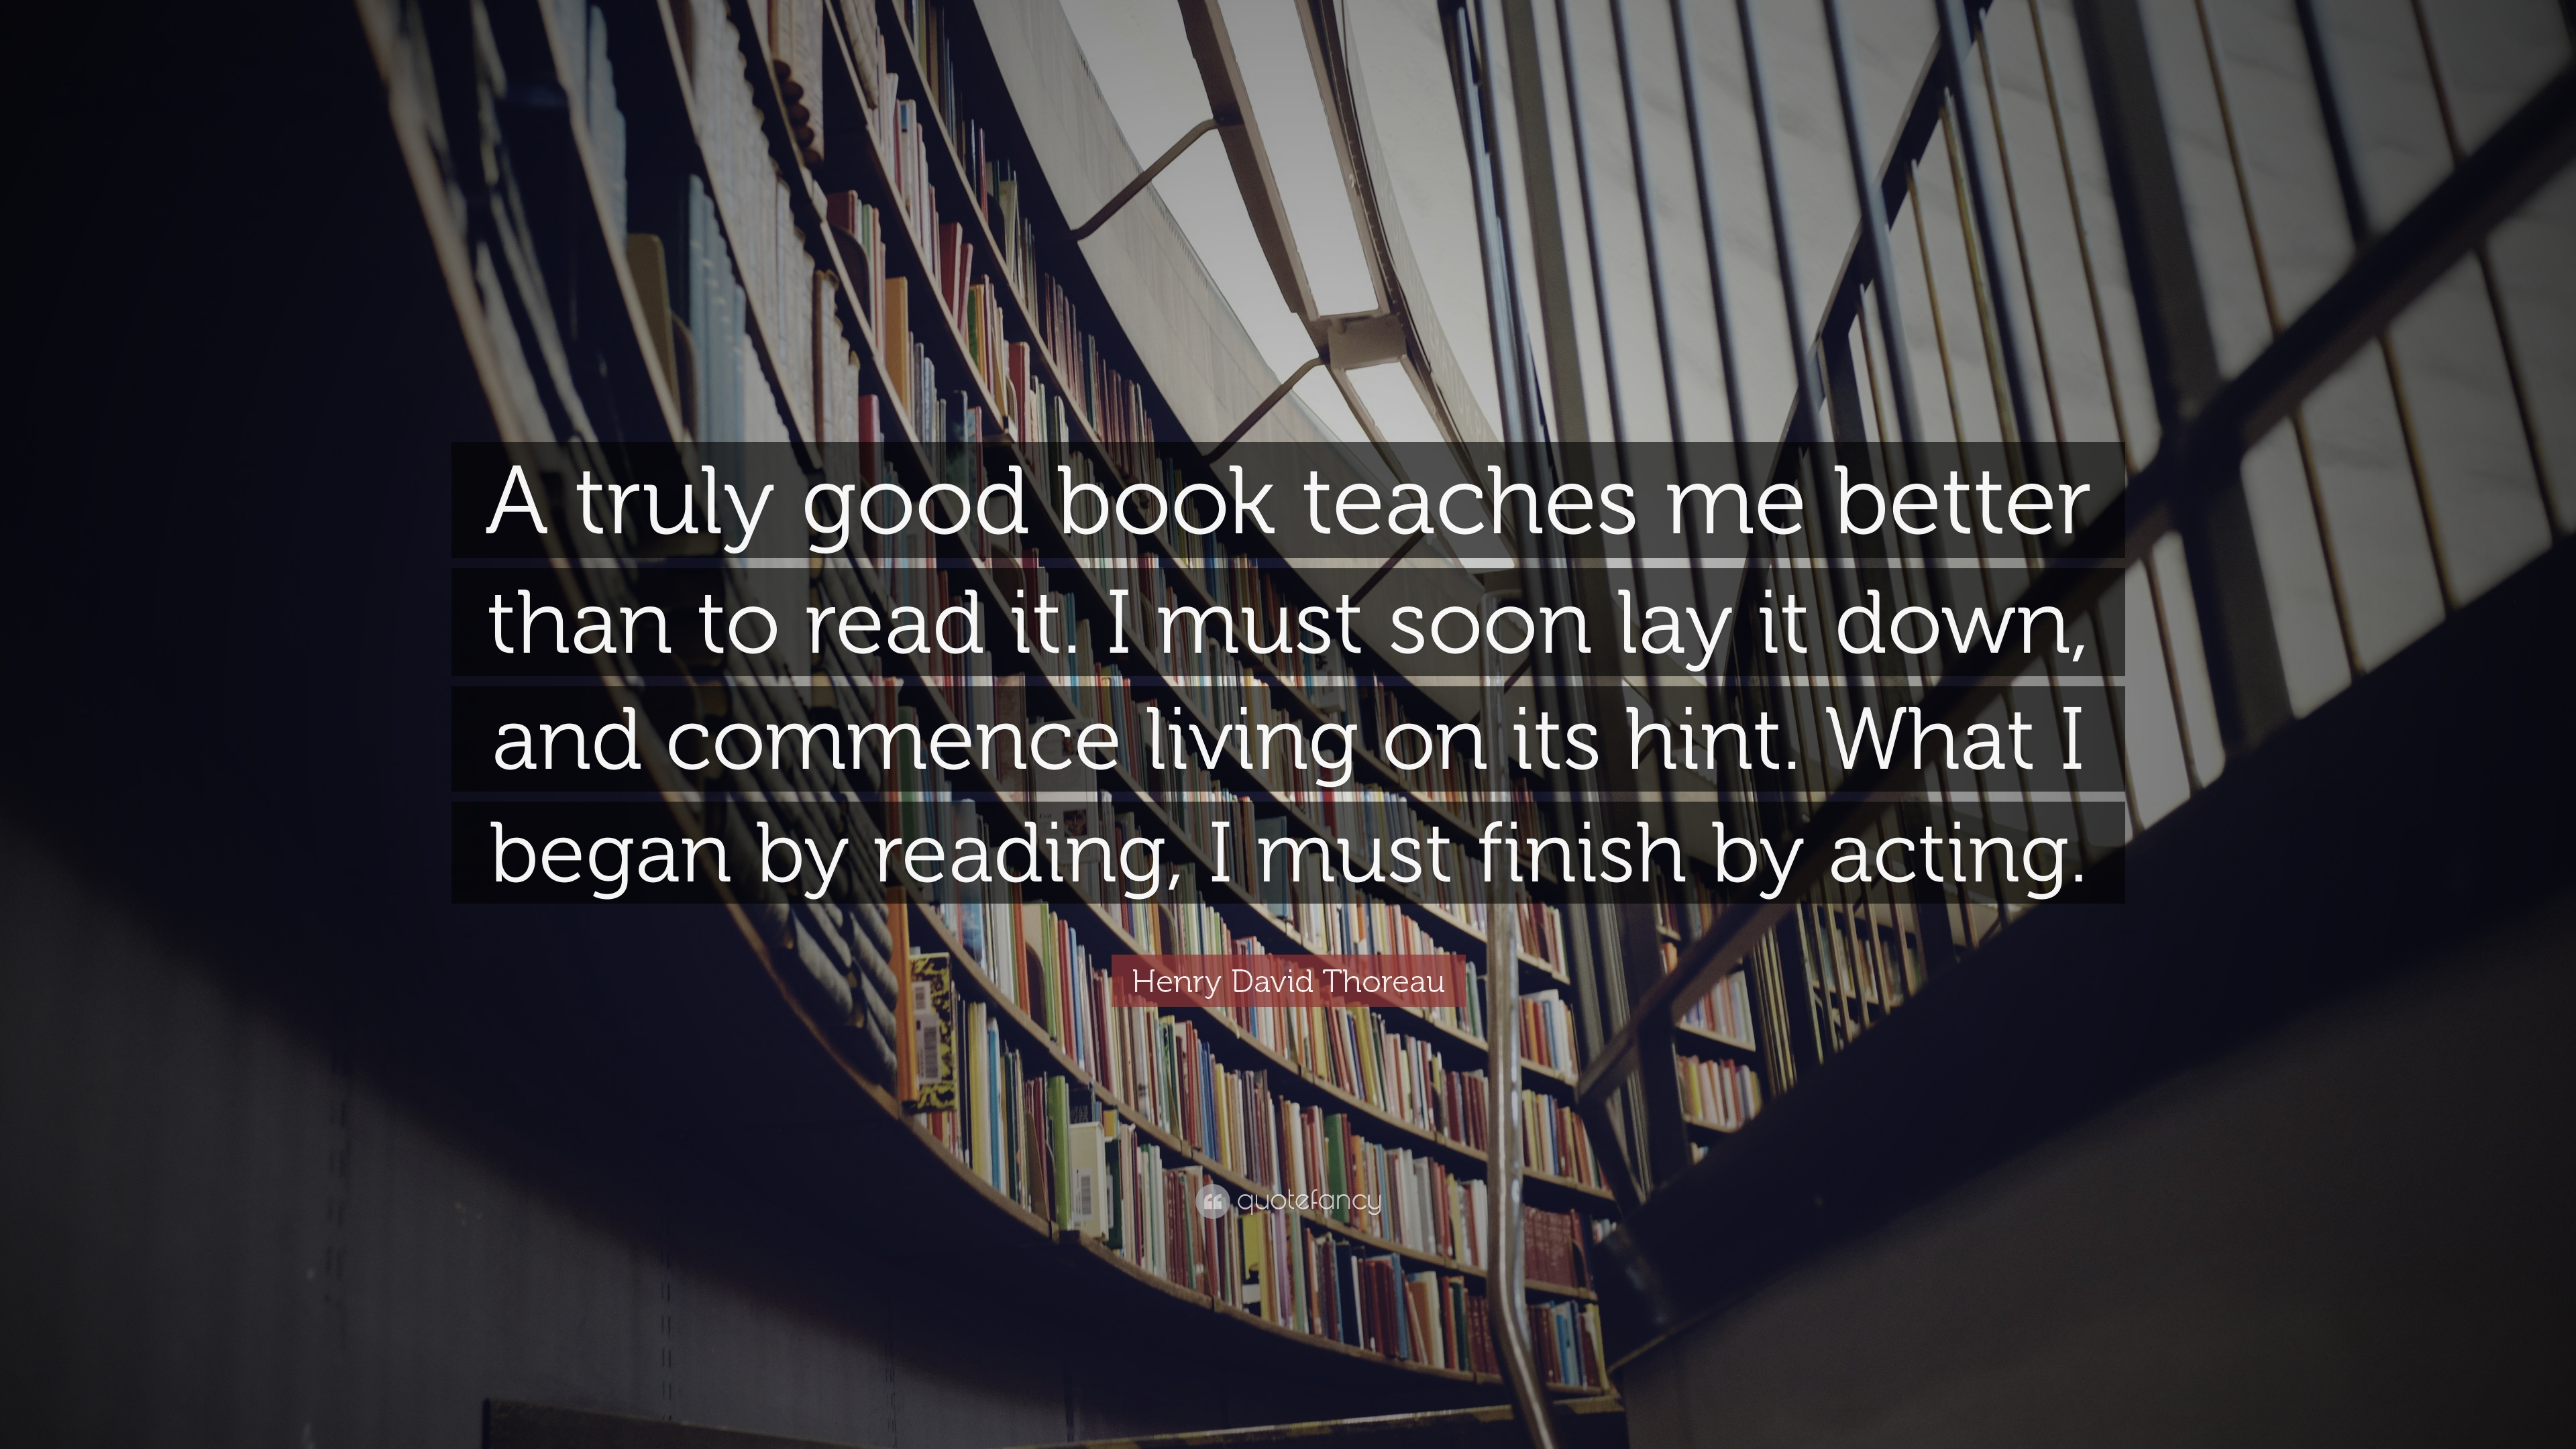 Henry David Thoreau Quote: U201cA Truly Good Book Teaches Me Better Than To Read